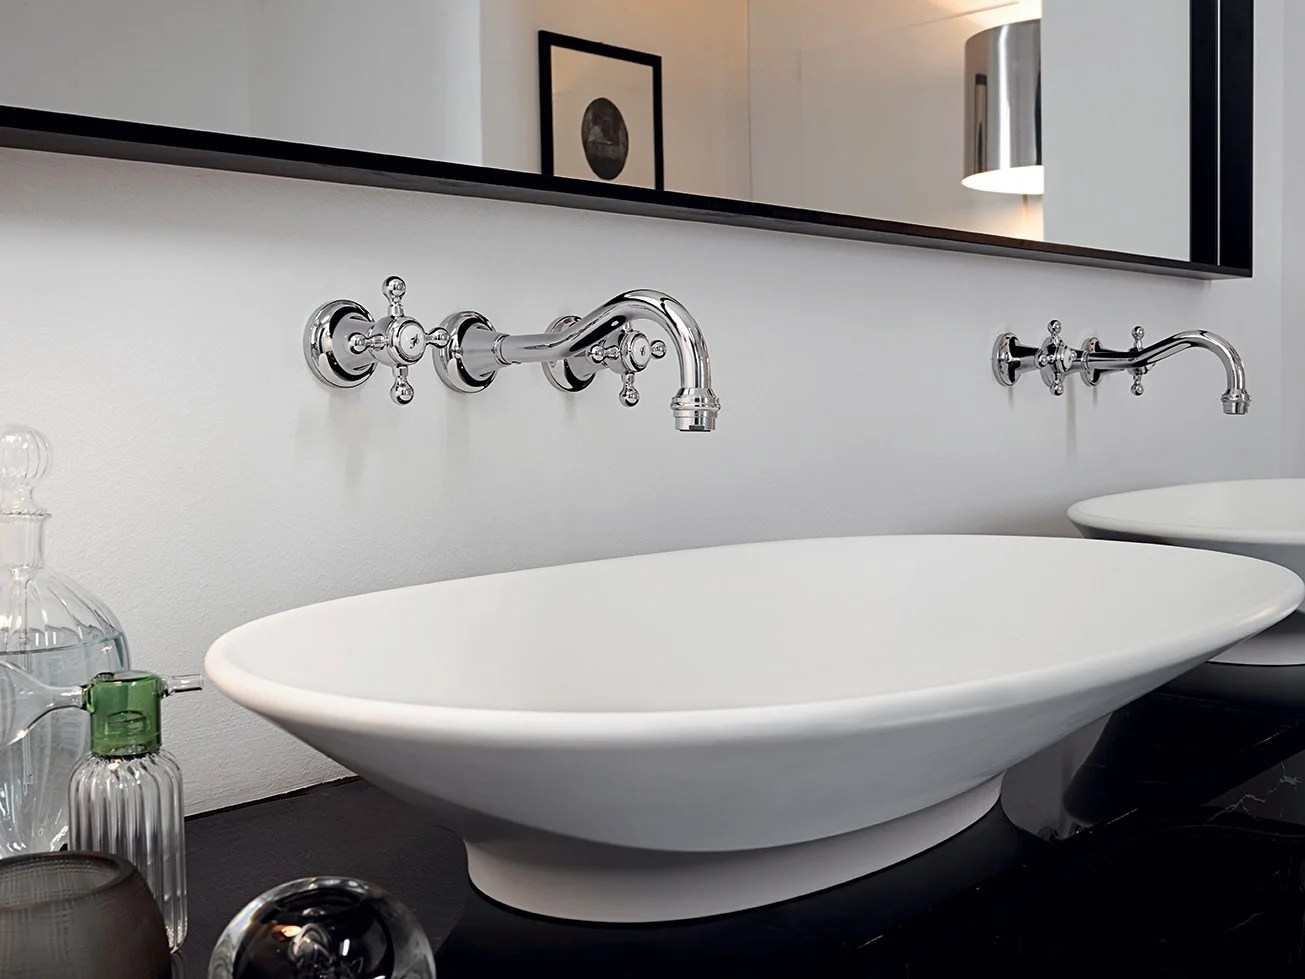 AGOR Robinet Pour Lavabo Mural By ZUCCHETTI Design